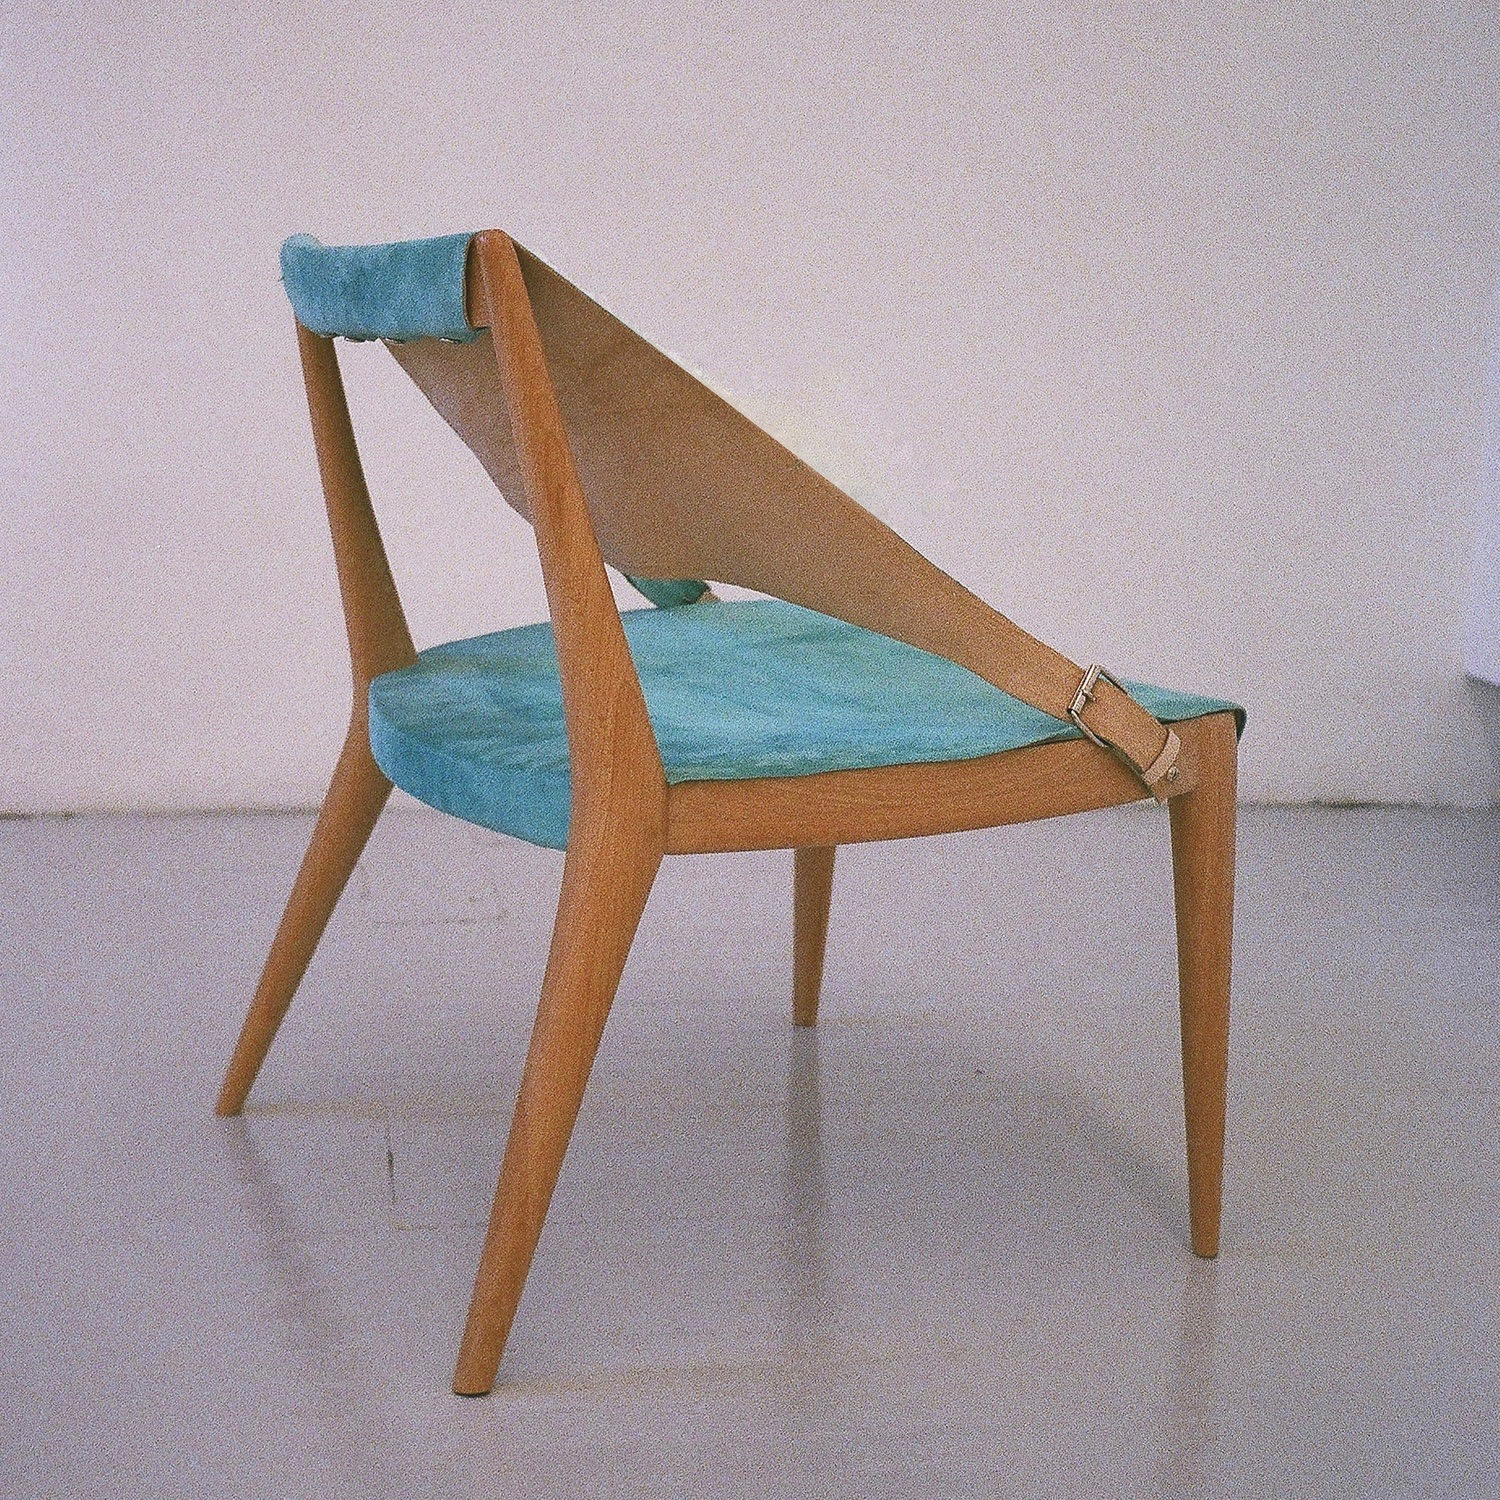 Variations on Anne Kahane - A reflection on our interview with furniture designer, Nicole Coon.